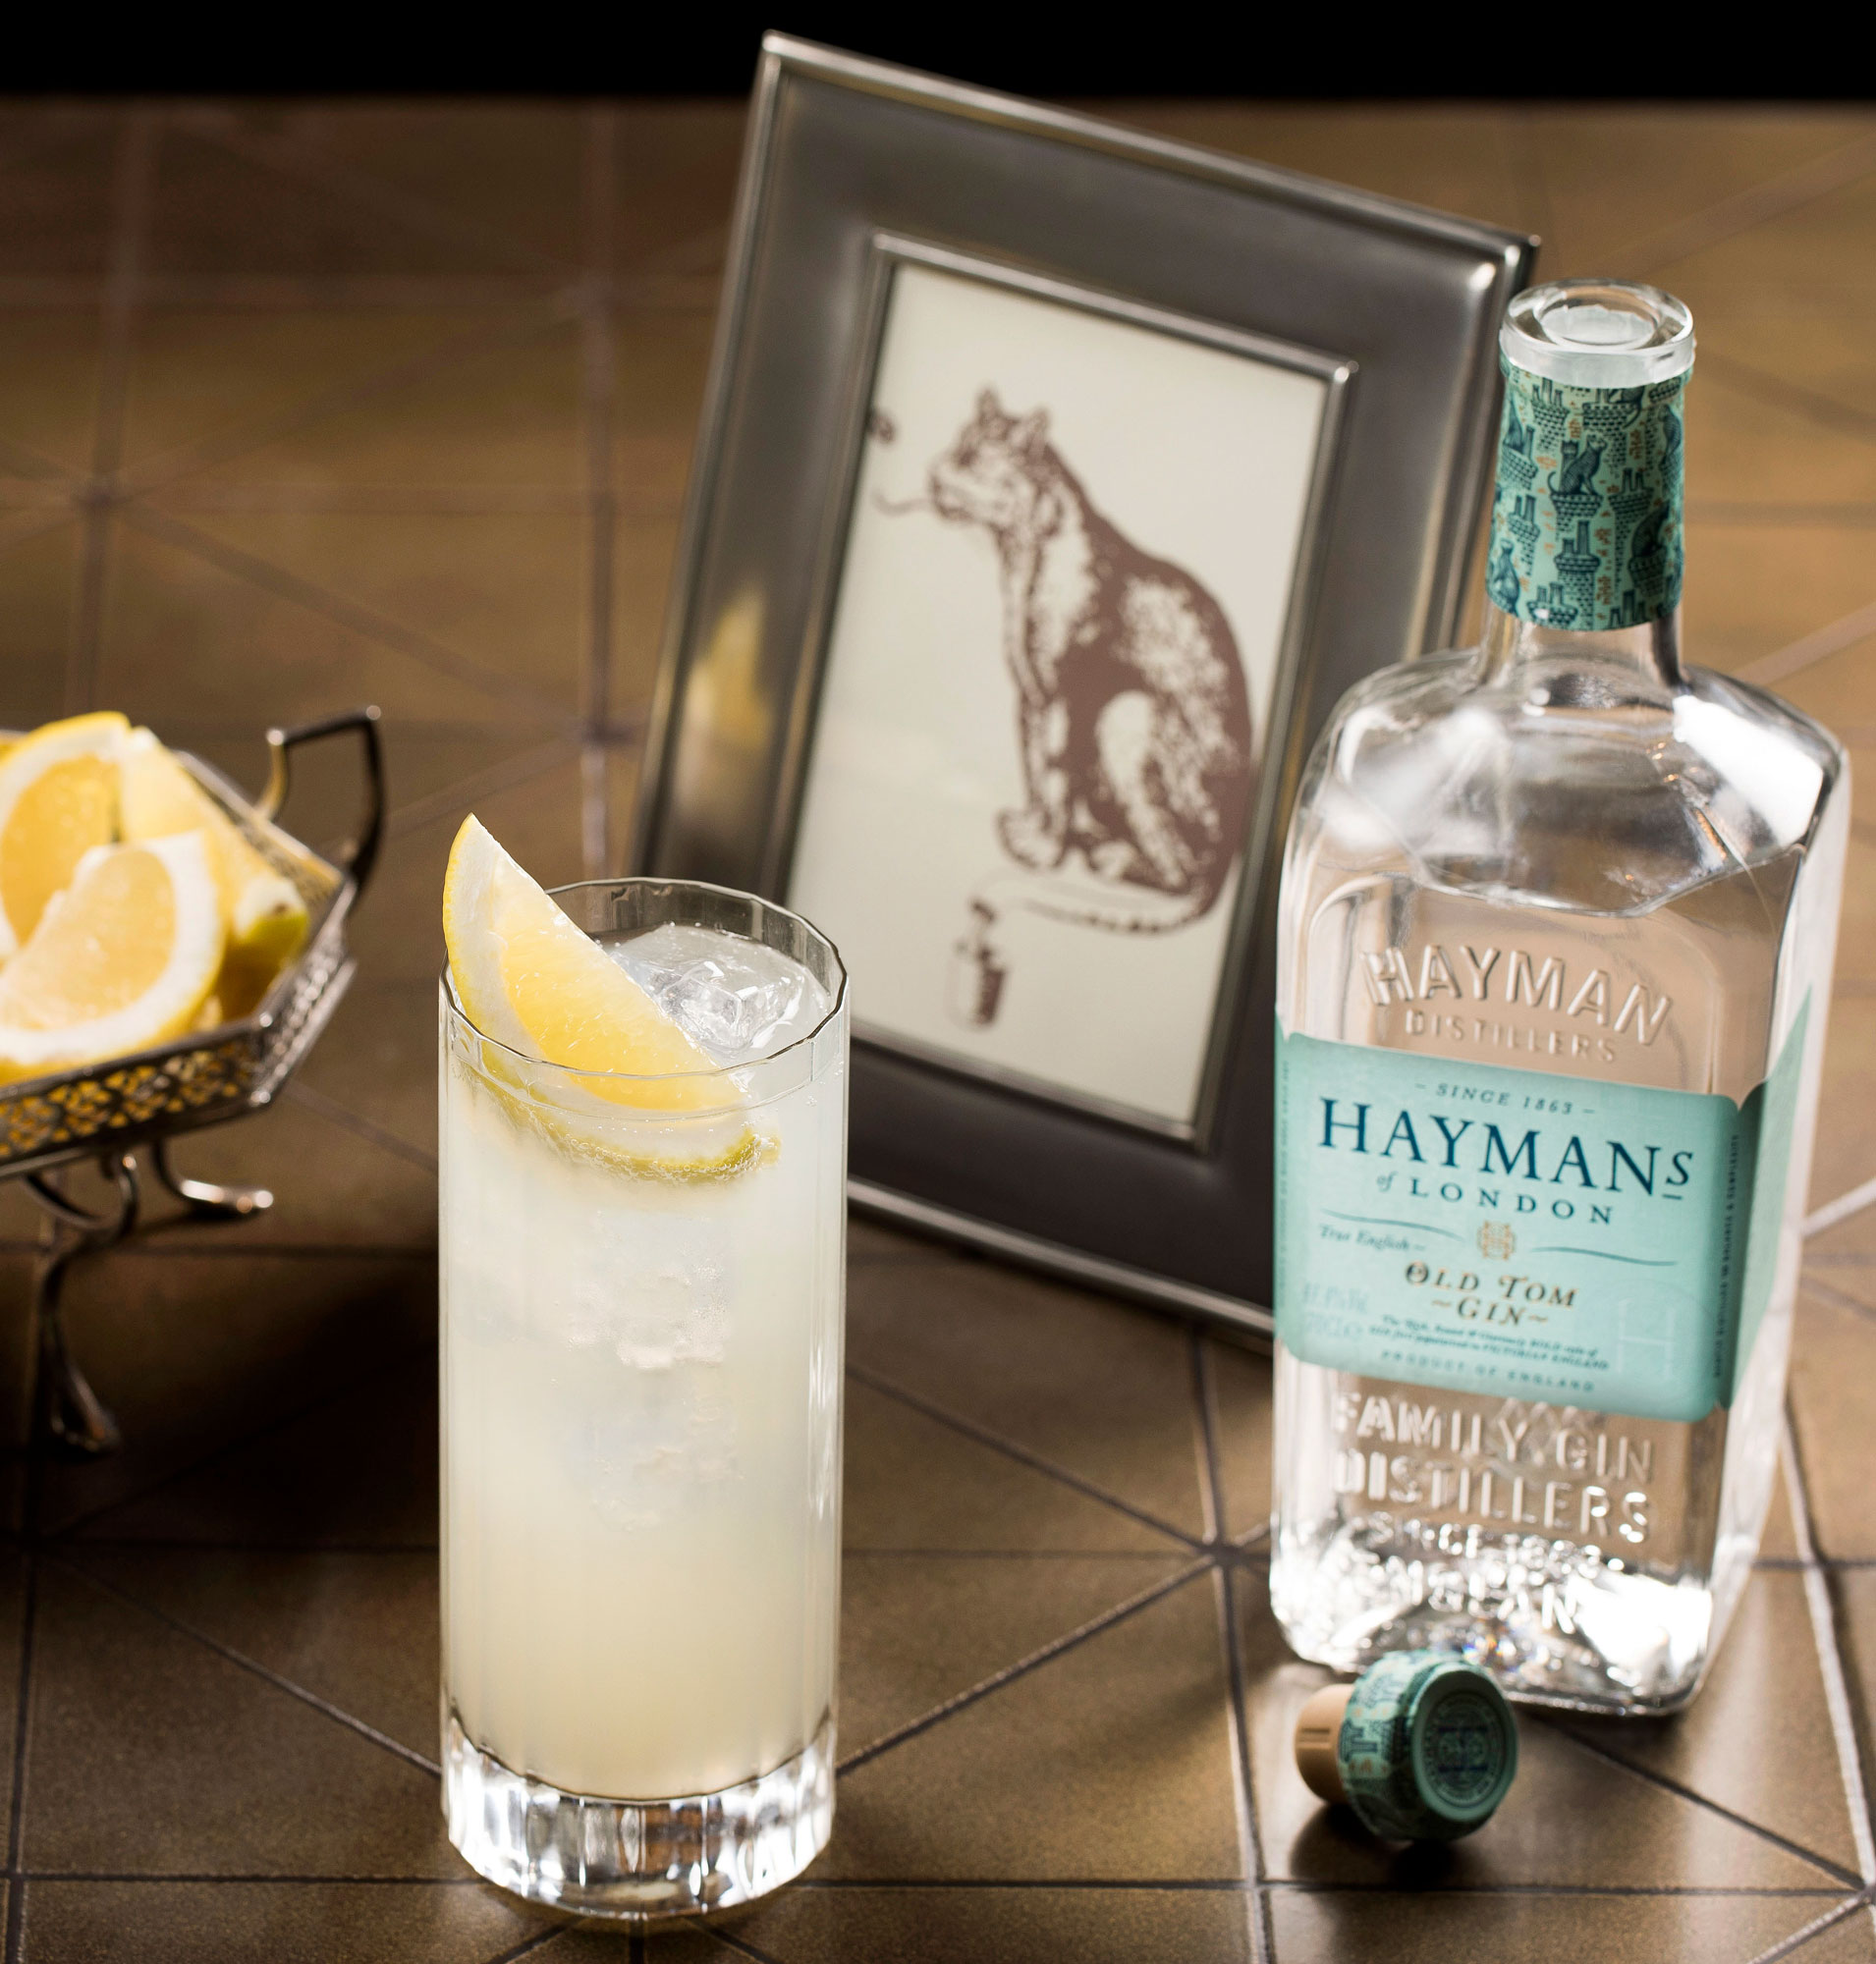 An example of the Tom Collins, the mixed drink (collins) featuring soda water, Hayman's Old Tom Gin, lemon juice, and simple syrup; photo by Hayman's of London